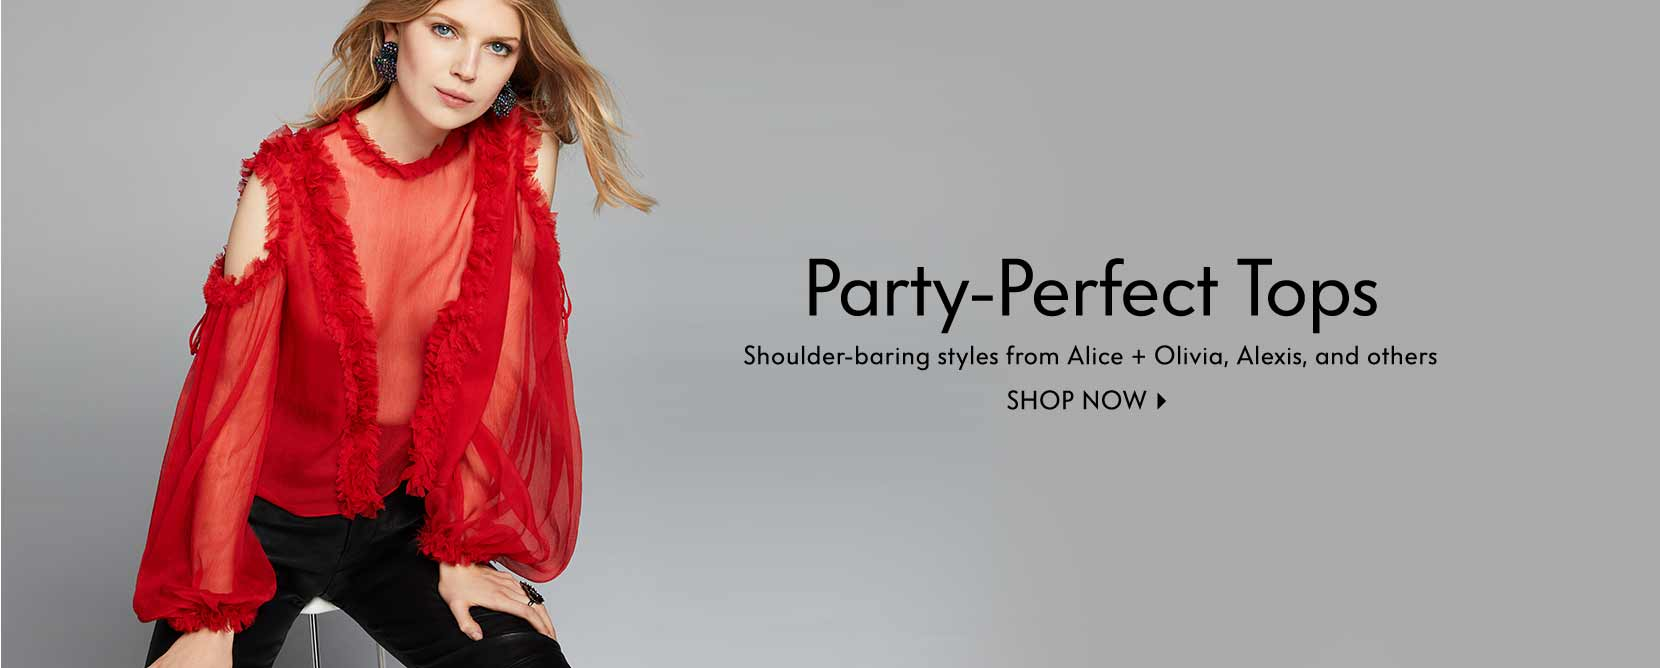 Party-Perfect Tops Shoulder-baring styles from Alice + Olivia, Alexis, and others